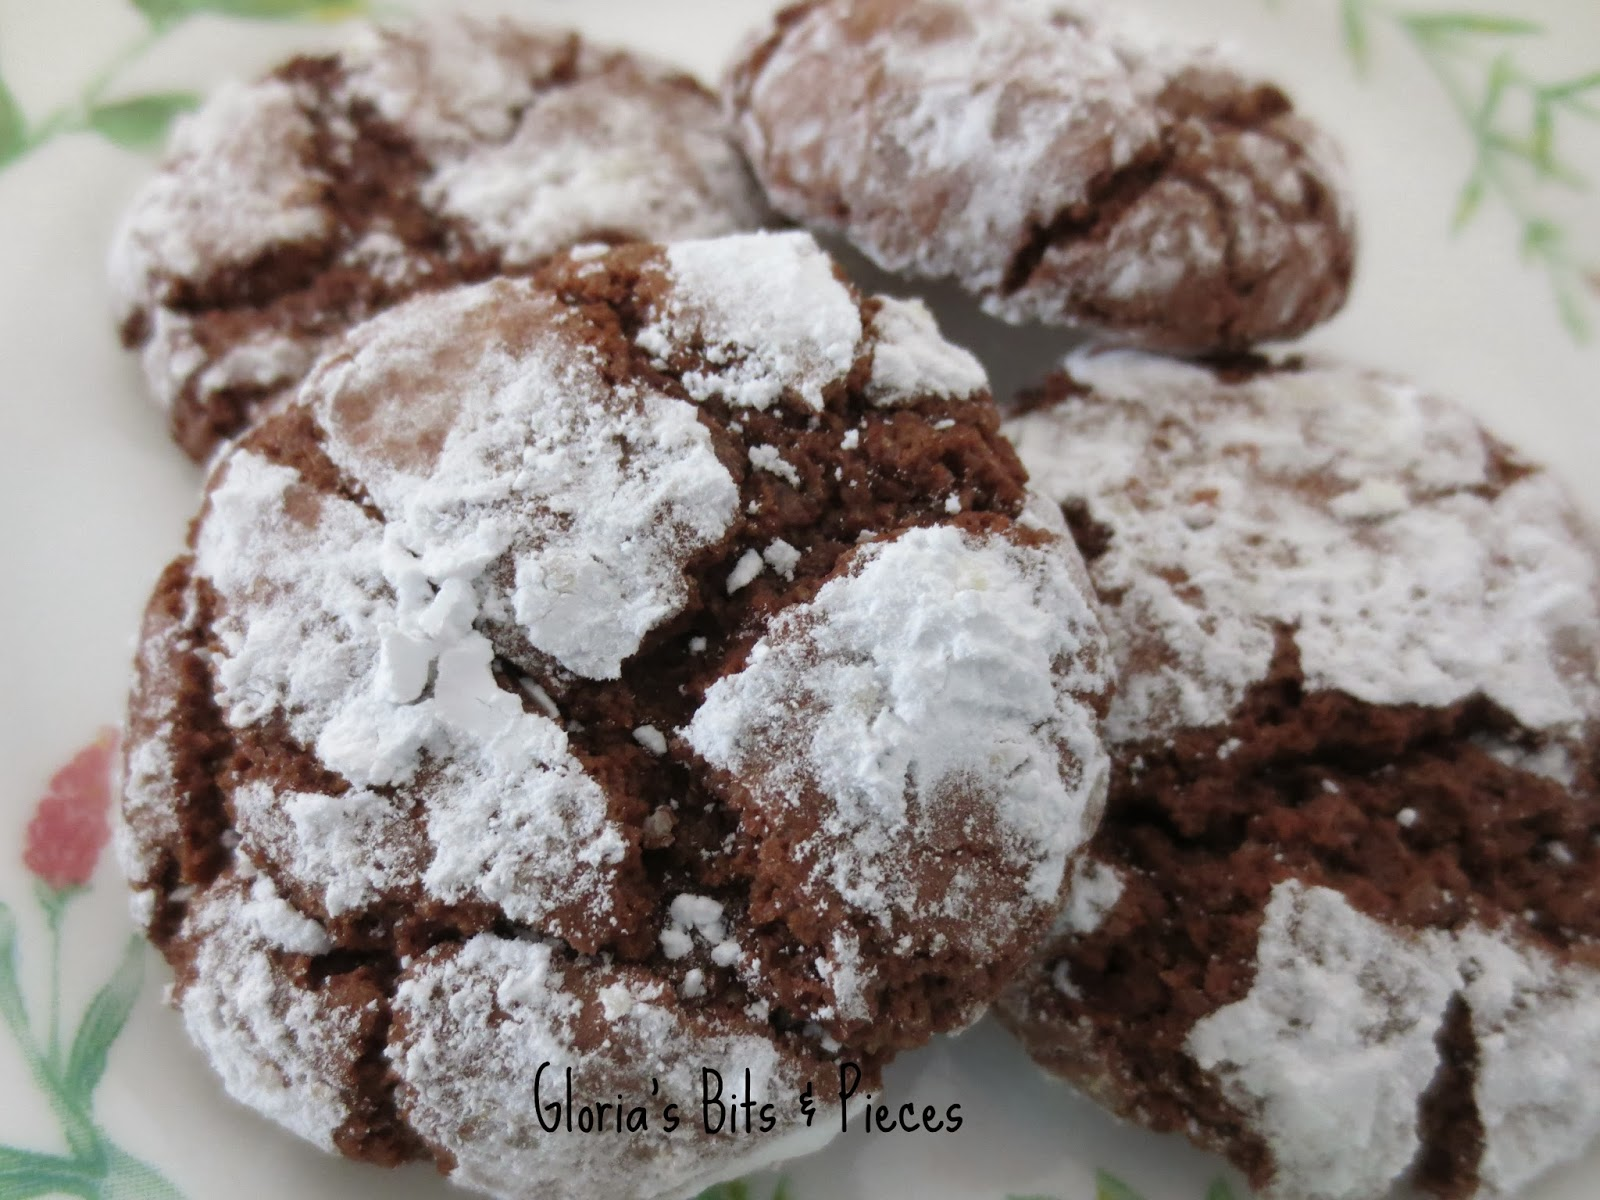 Gloria's Bits and Pieces: Chocolate Crinkles Cookie Recipe